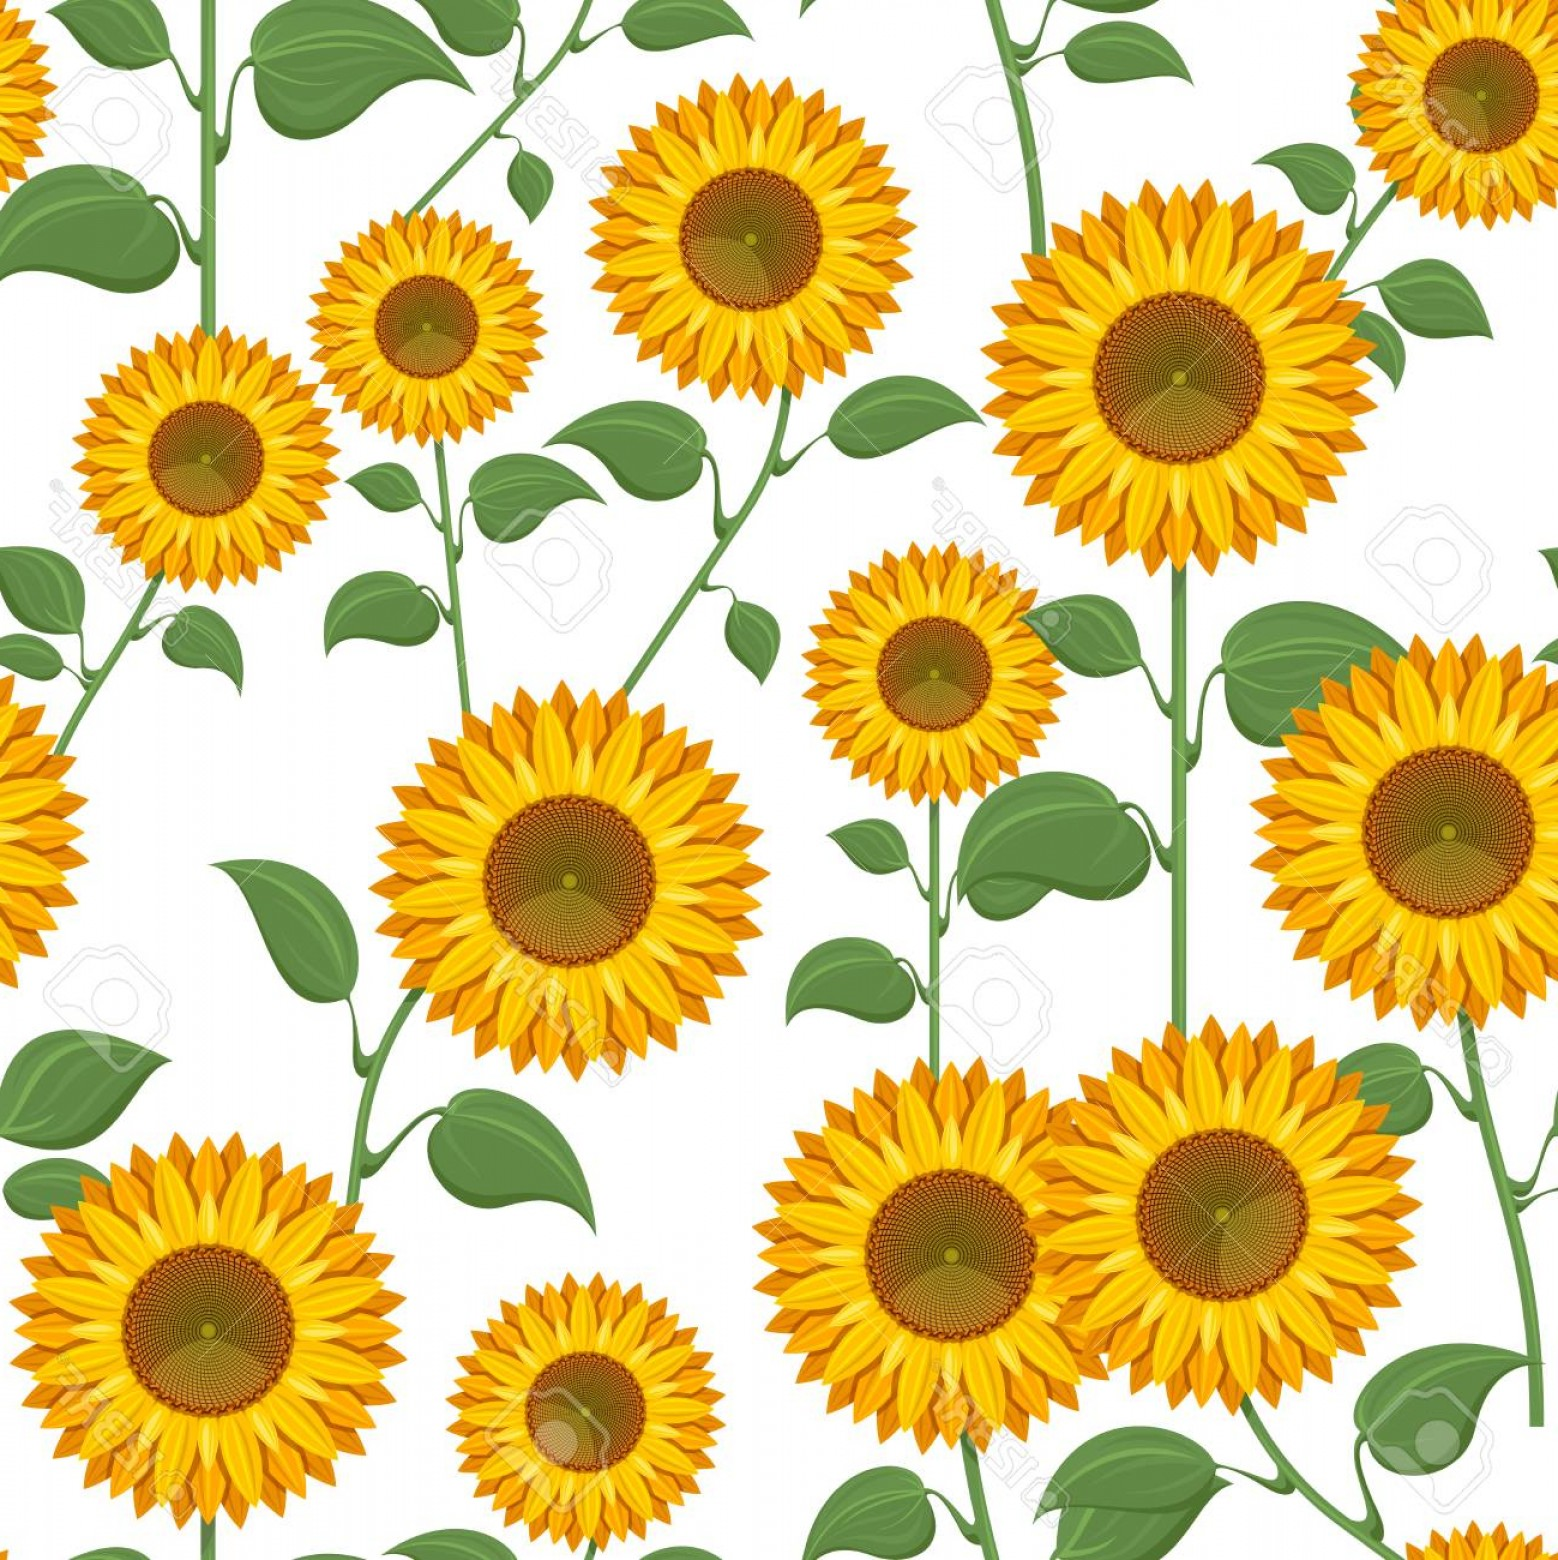 Sunflower Vector Pattern: Photostock Vector Sunflowers On White Background Sunflower With Green Leaves Seamless Pattern Vector Illustration